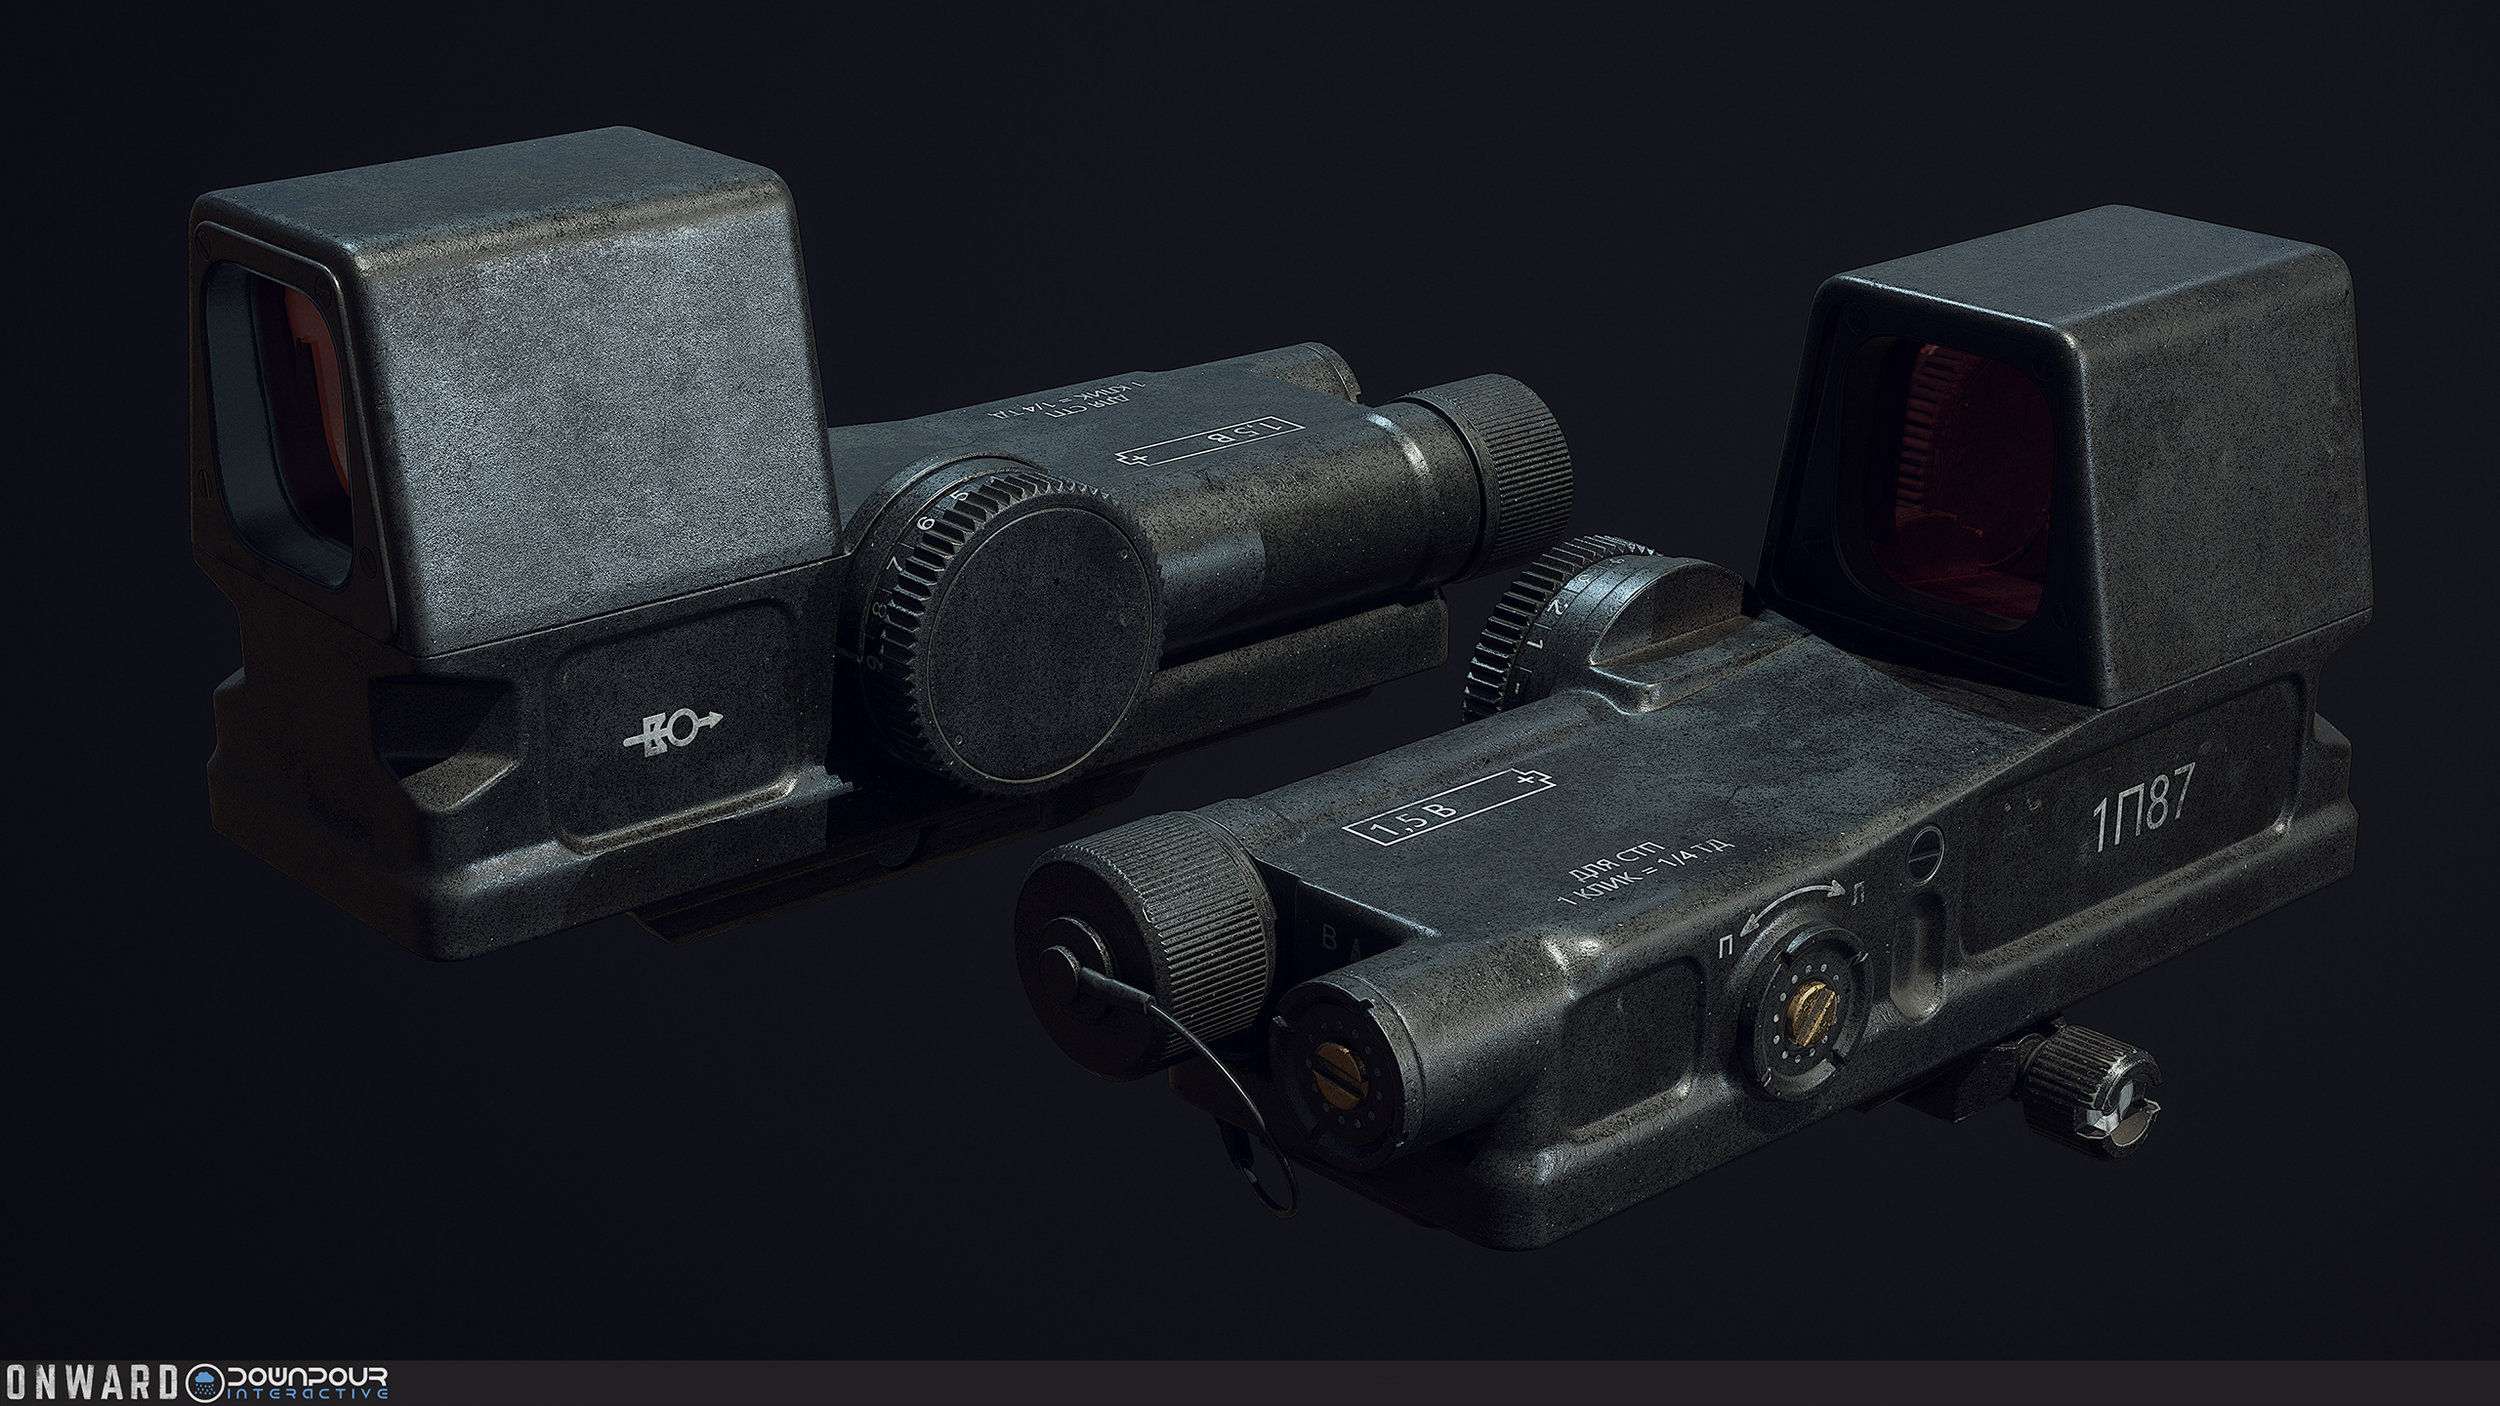 The new PK-120 sight, replacing the holographic sight on the VOLK faction.